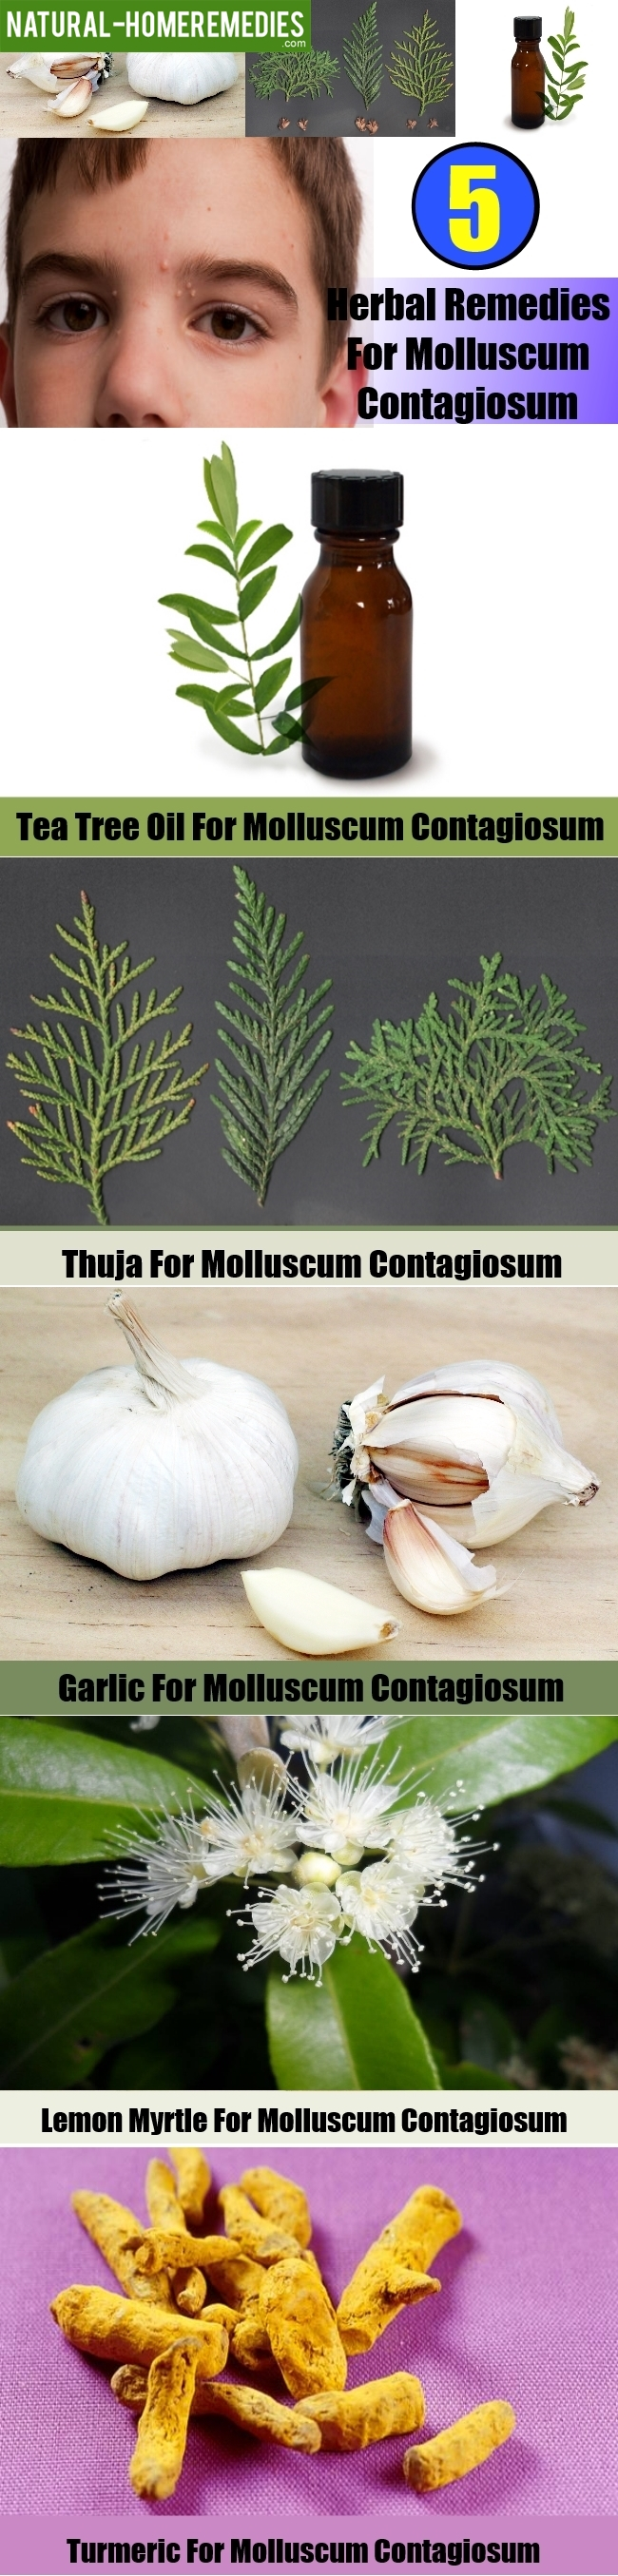 5 Best Herbal Remedies For Molluscum Contagiosum